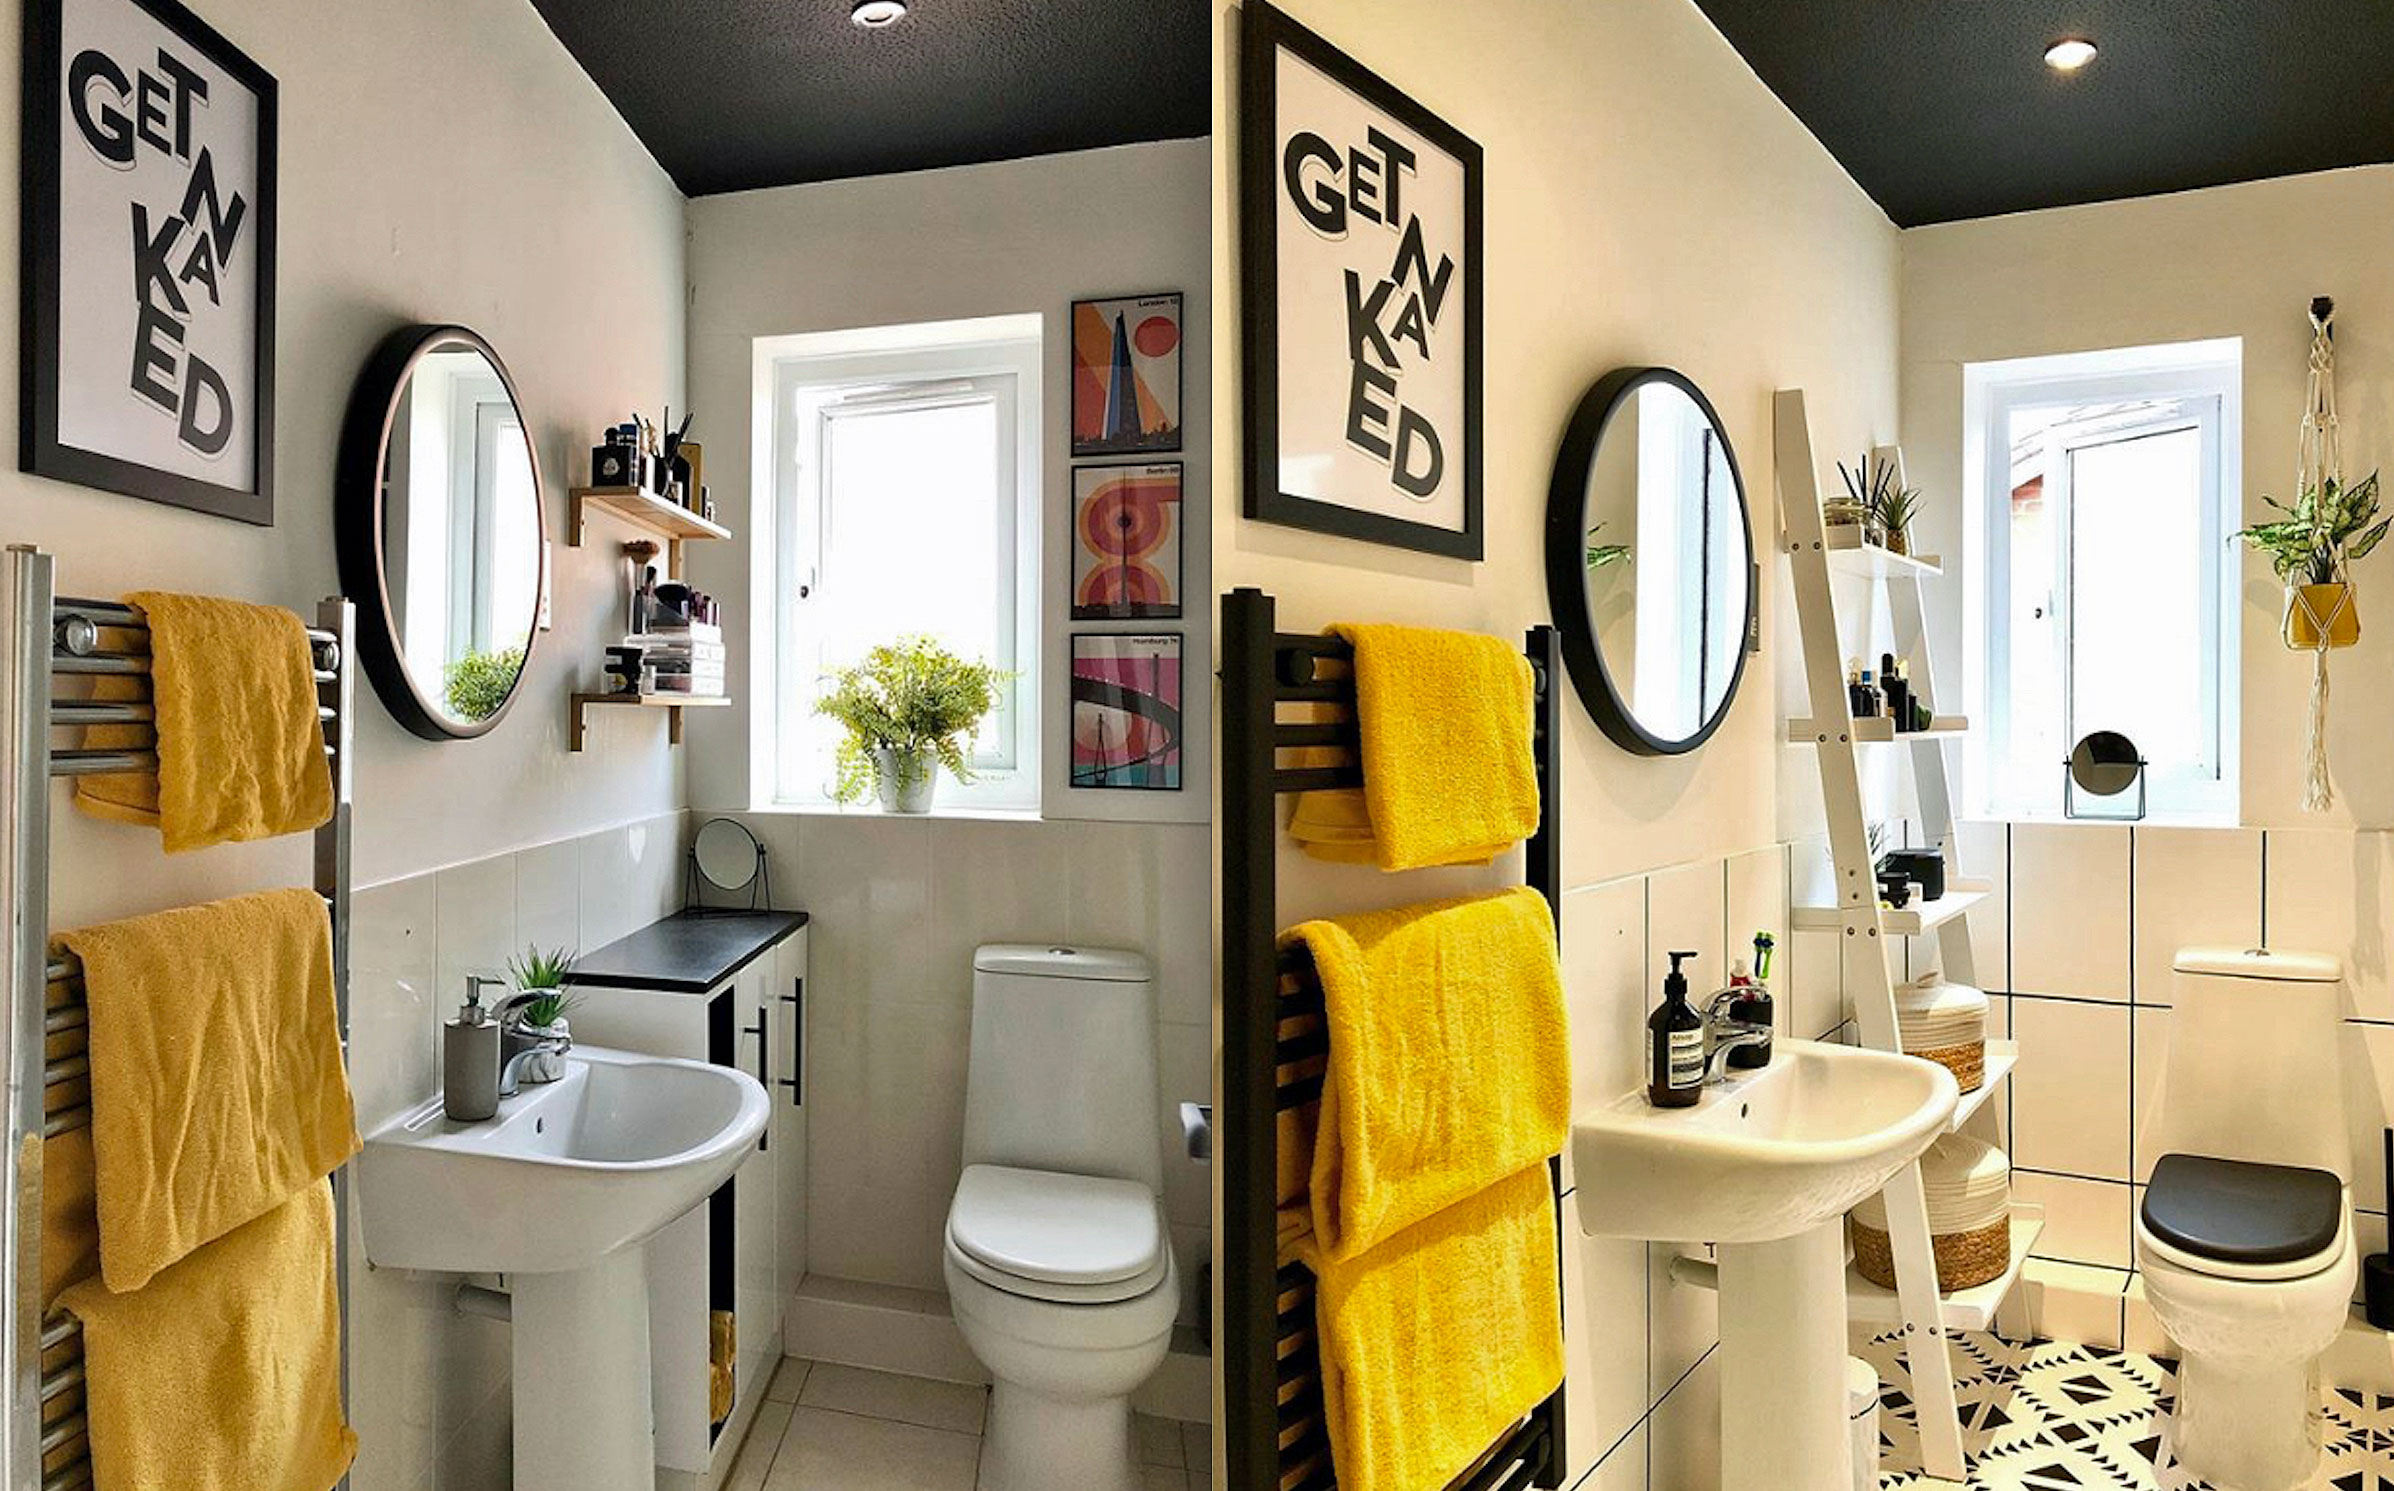 drab to fab with cheap tile paint